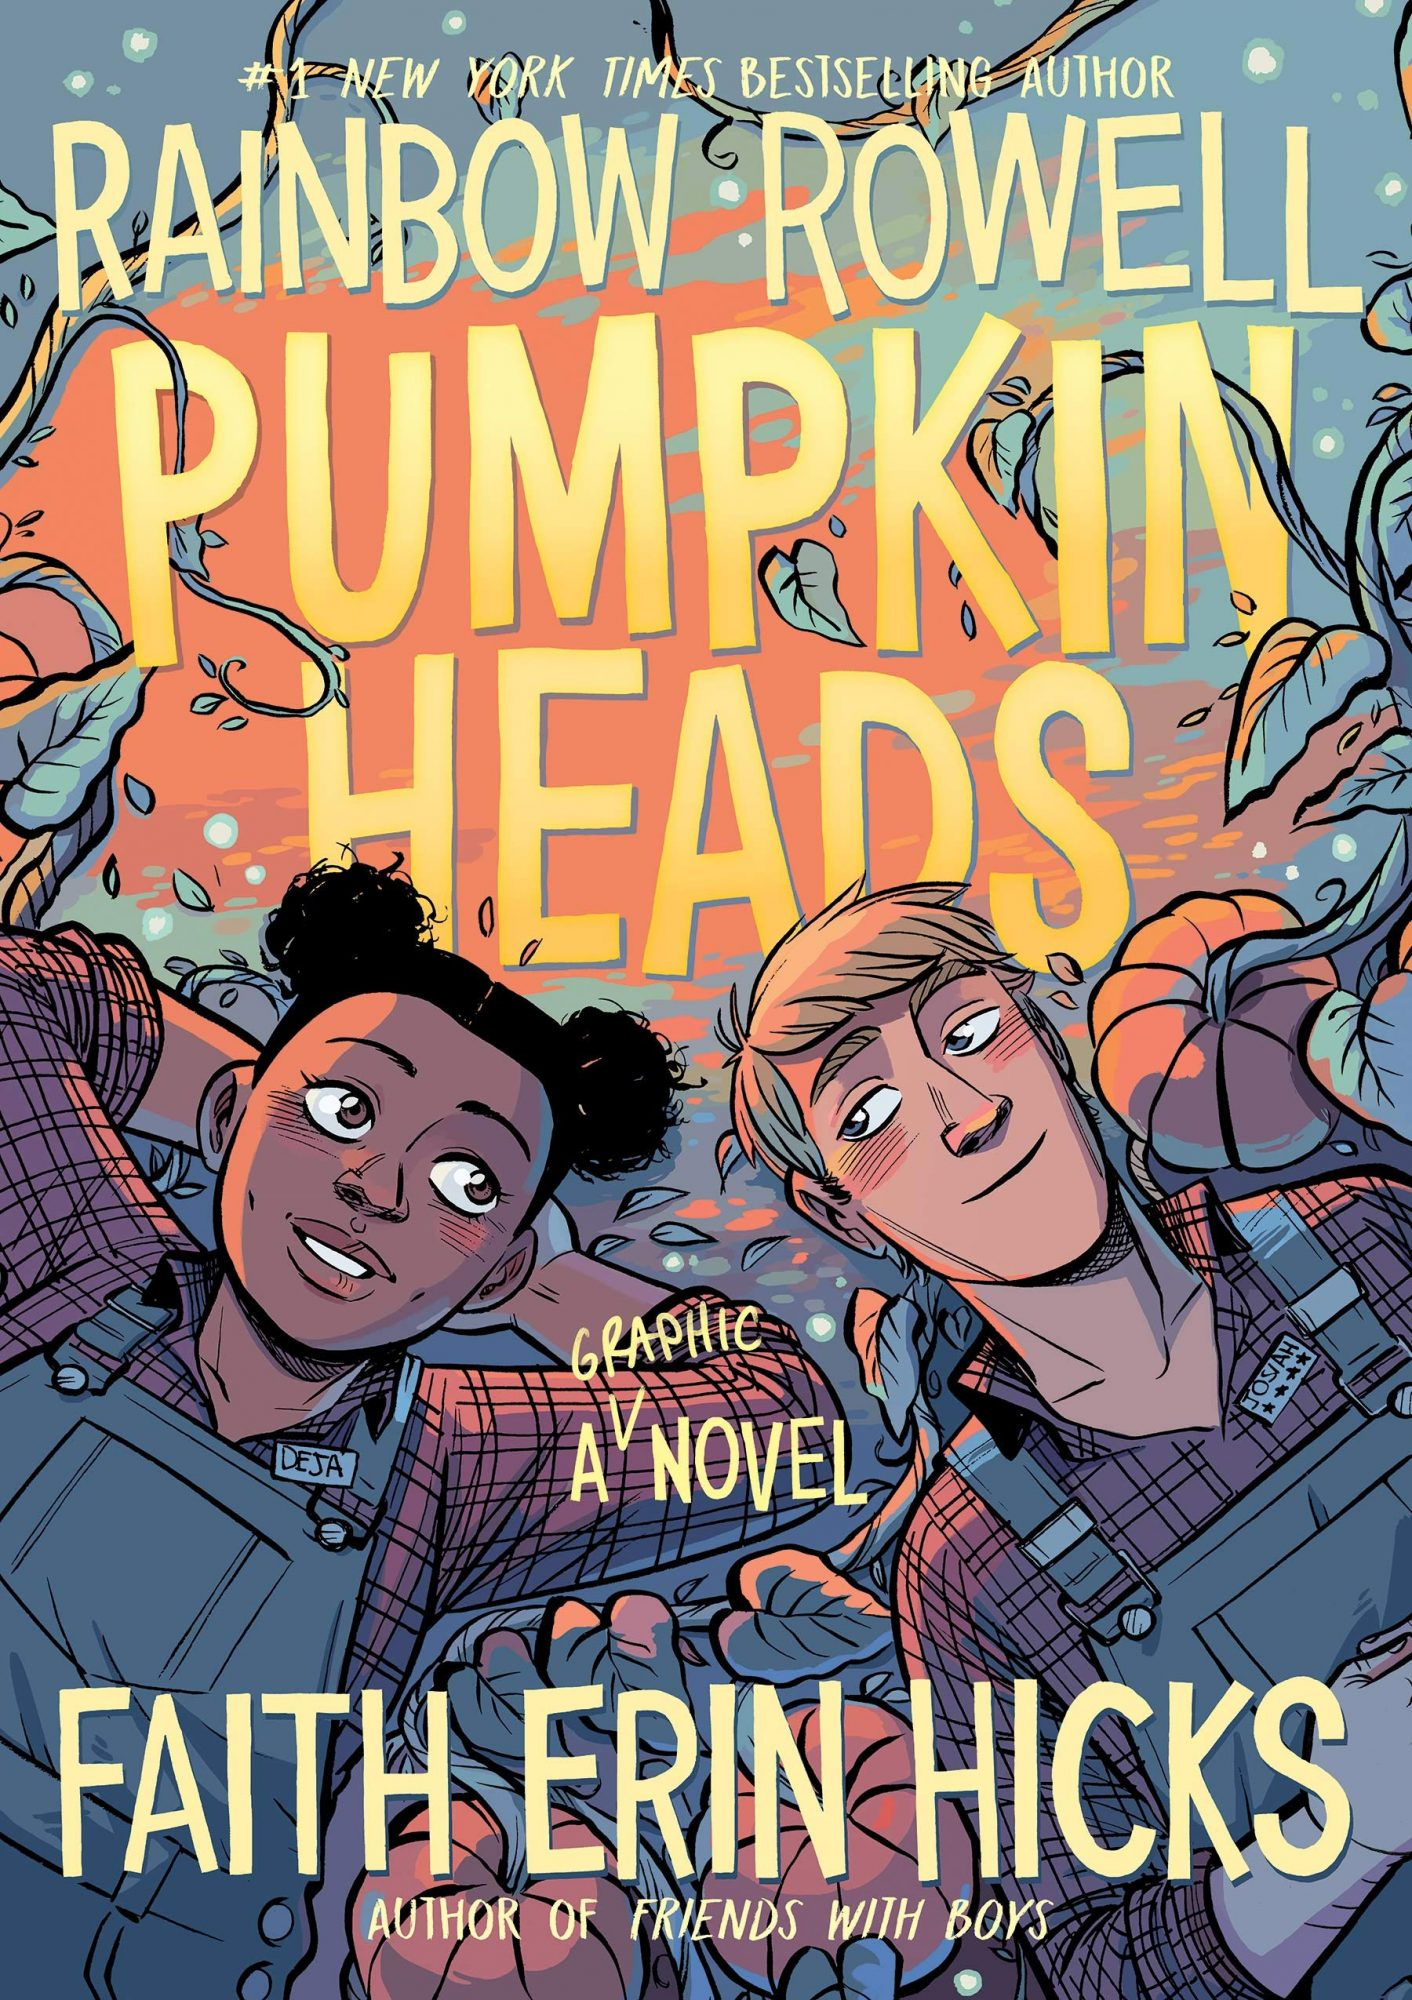 Pumpkinheads by Rainbow RowellPublisher: First Second